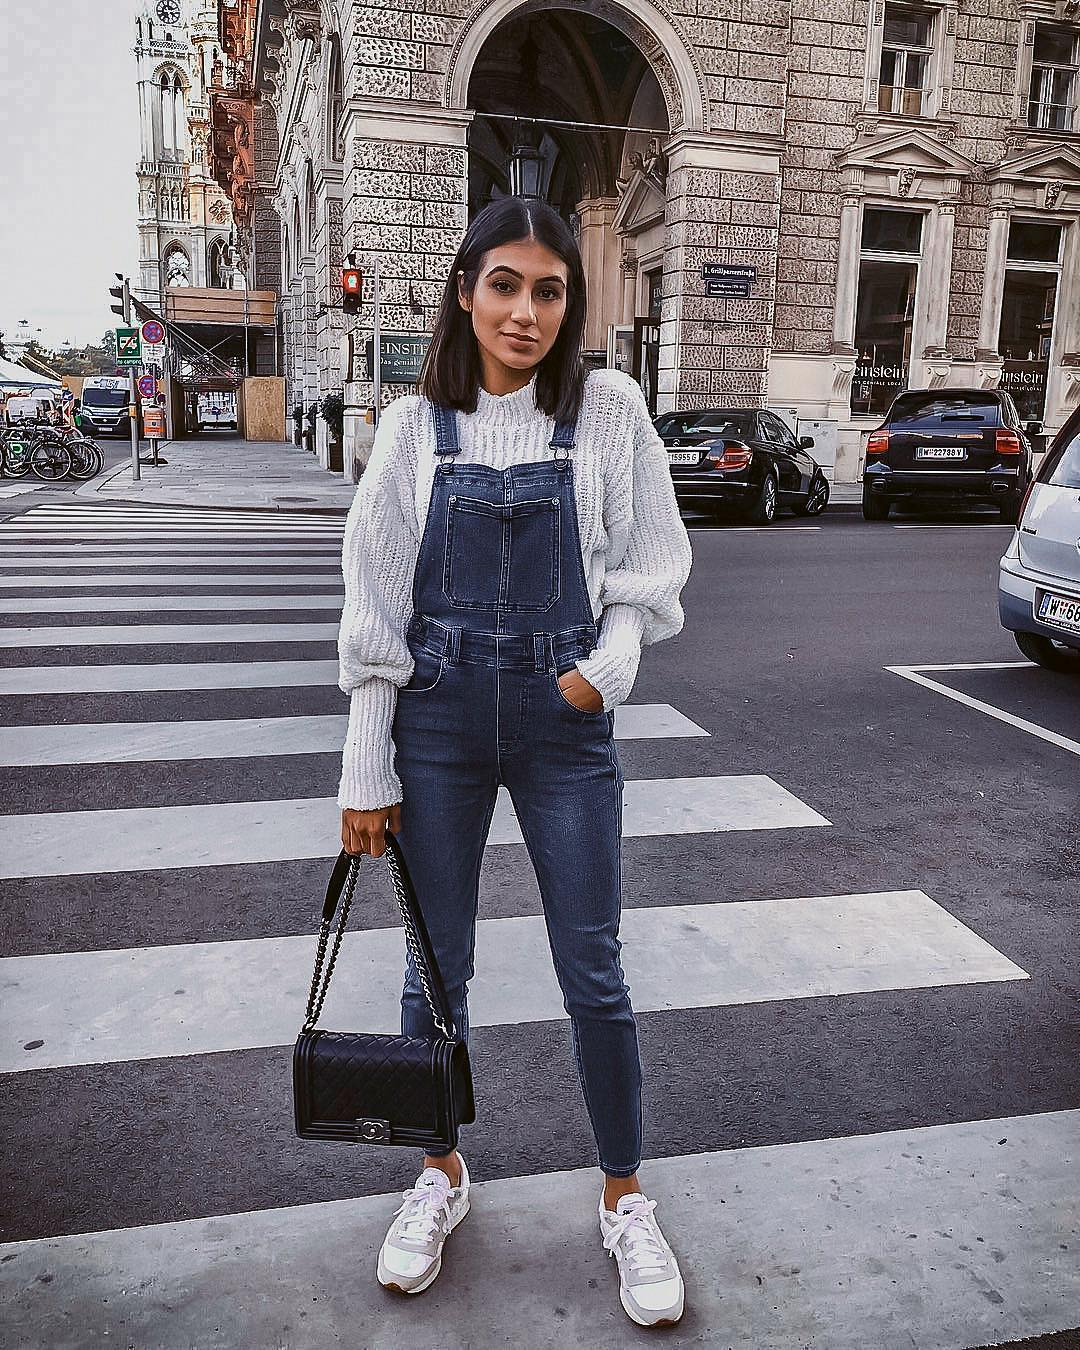 Casual Sporty Basics: Denim Overalls, White Sweater And White Sneakers 2019